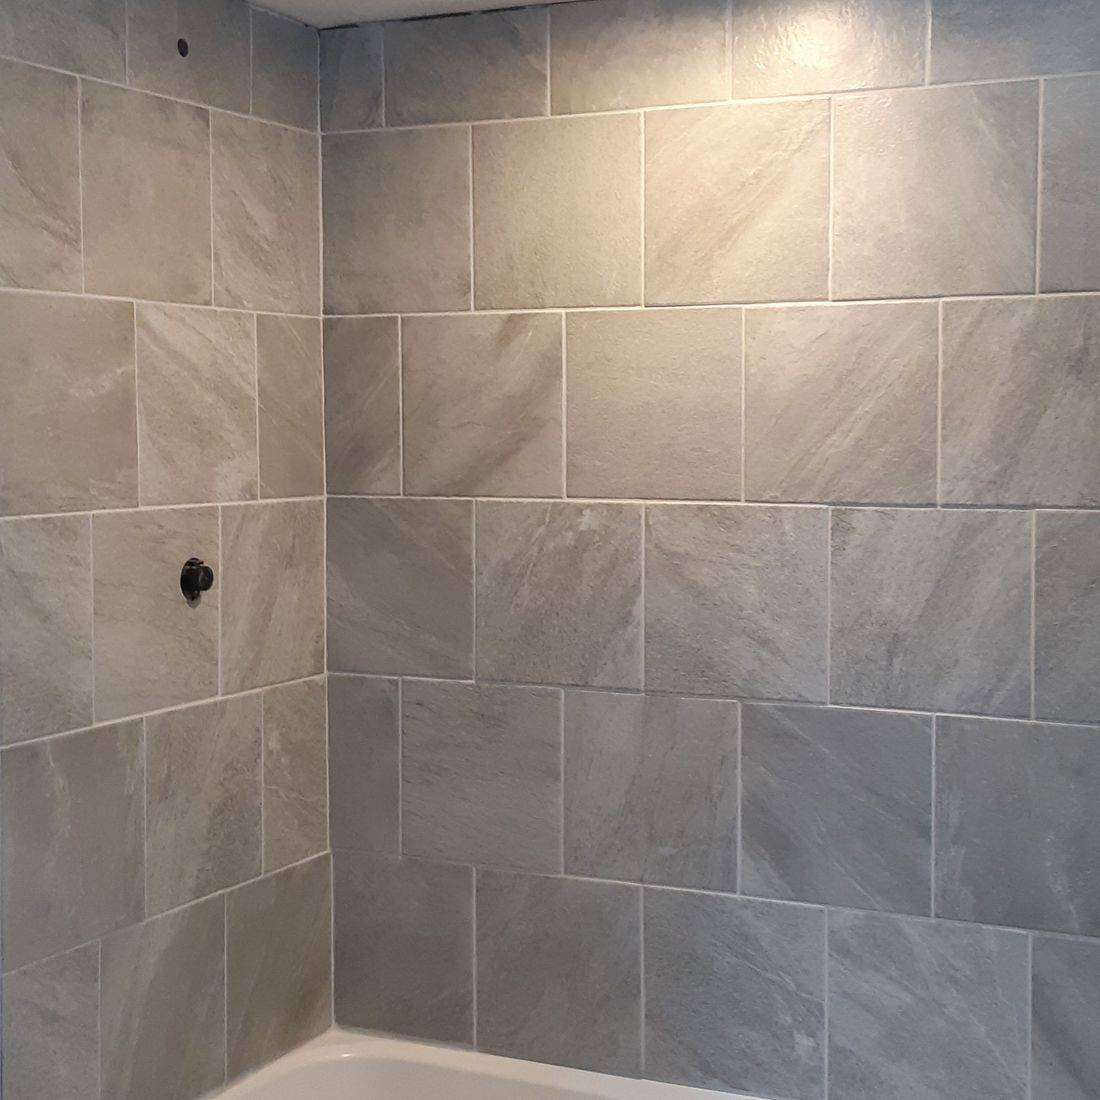 TUB SURROUND TILE